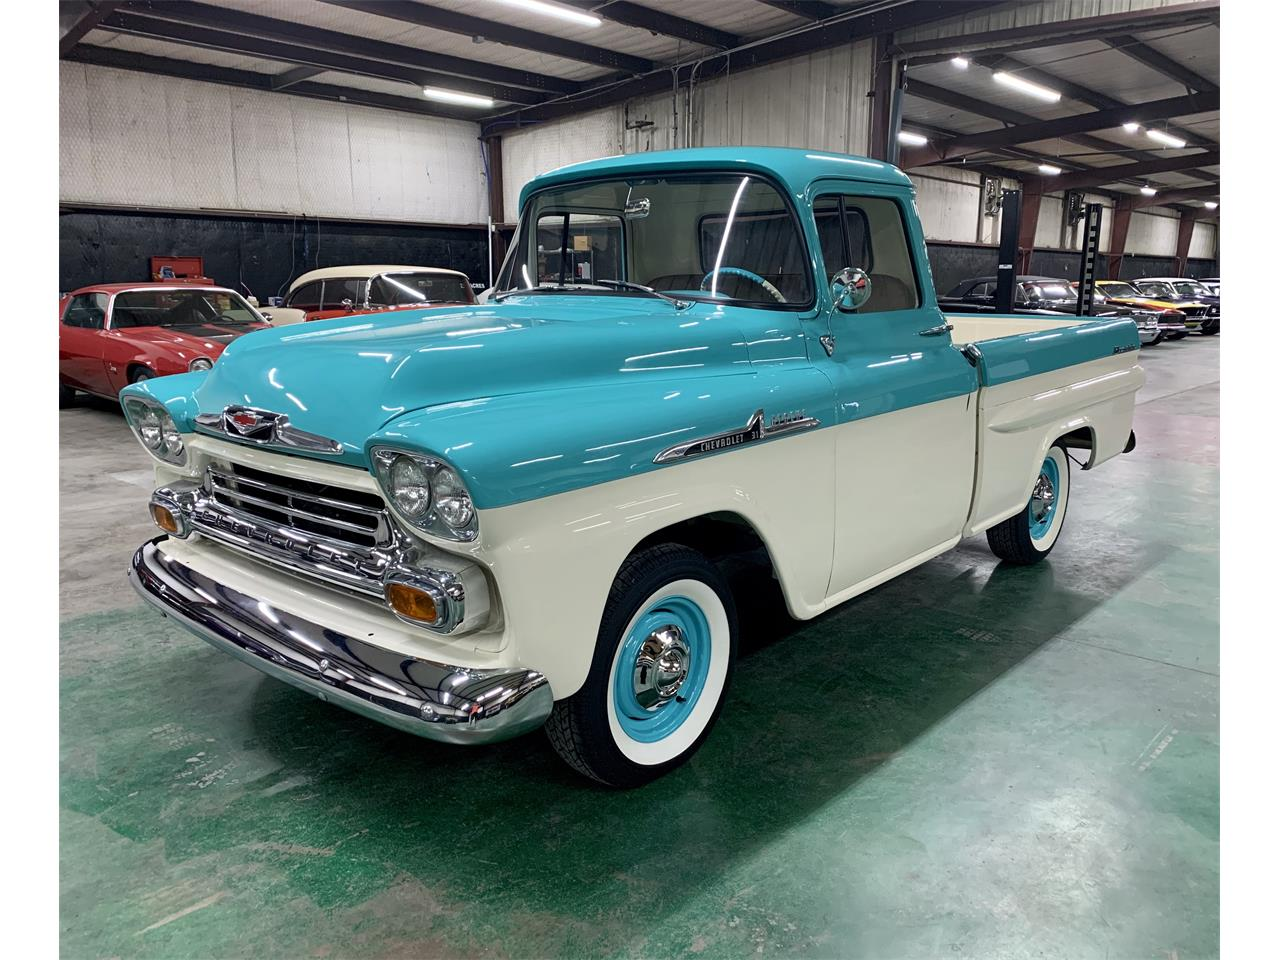 1958 Chevy Apache For Sale >> 1958 Chevrolet Apache For Sale Classiccars Com Cc 1230703